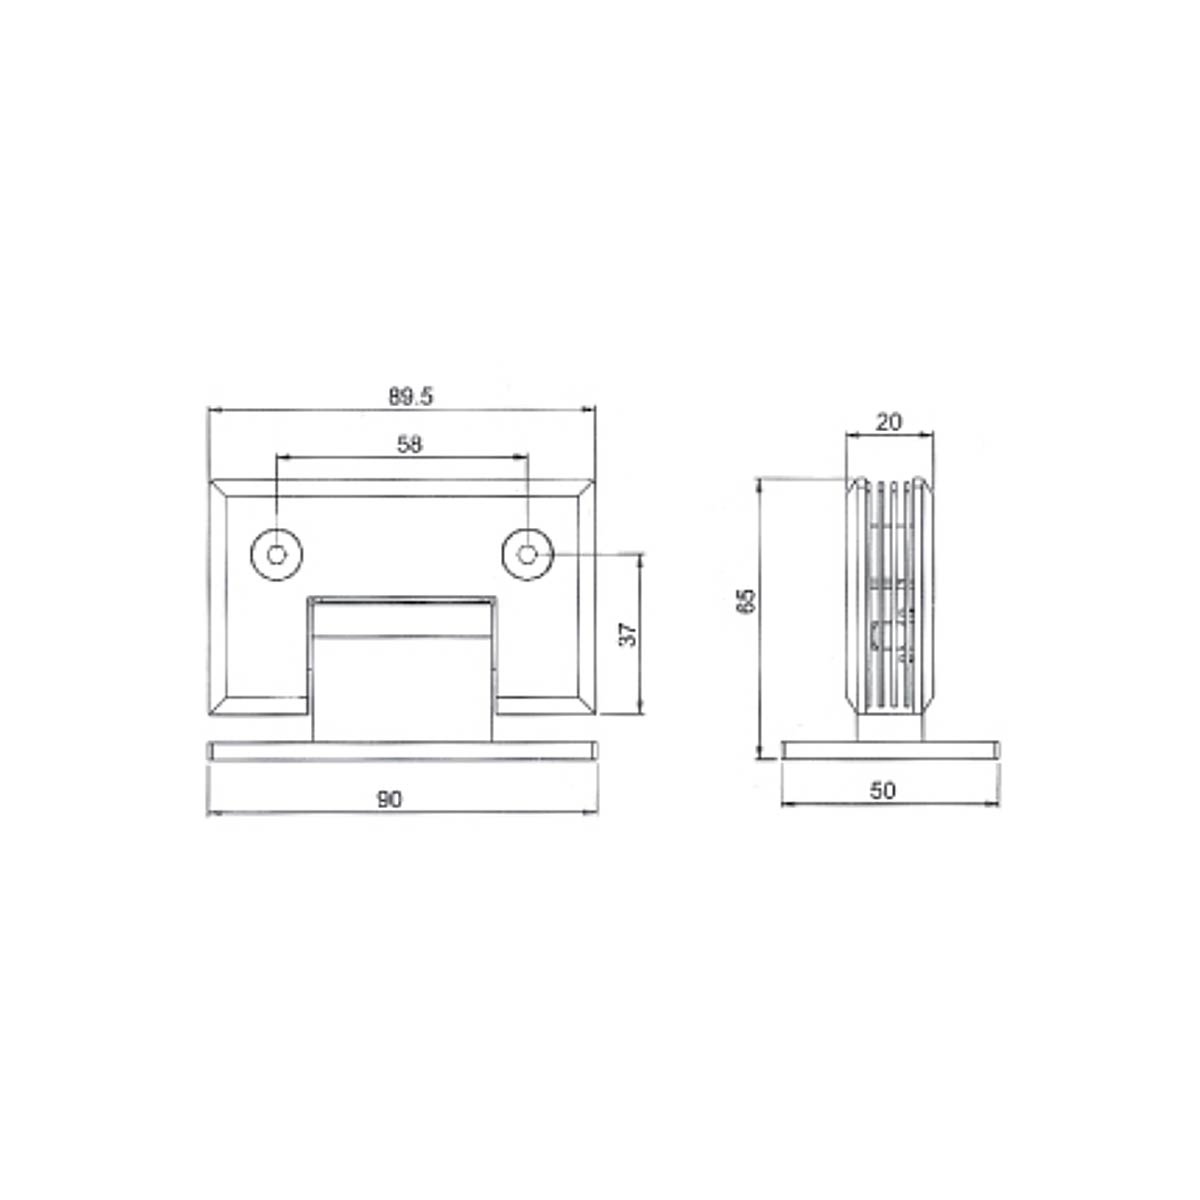 Wall to Glass door hinge , shower glass, hinge specs, wall to glass, stainless steel